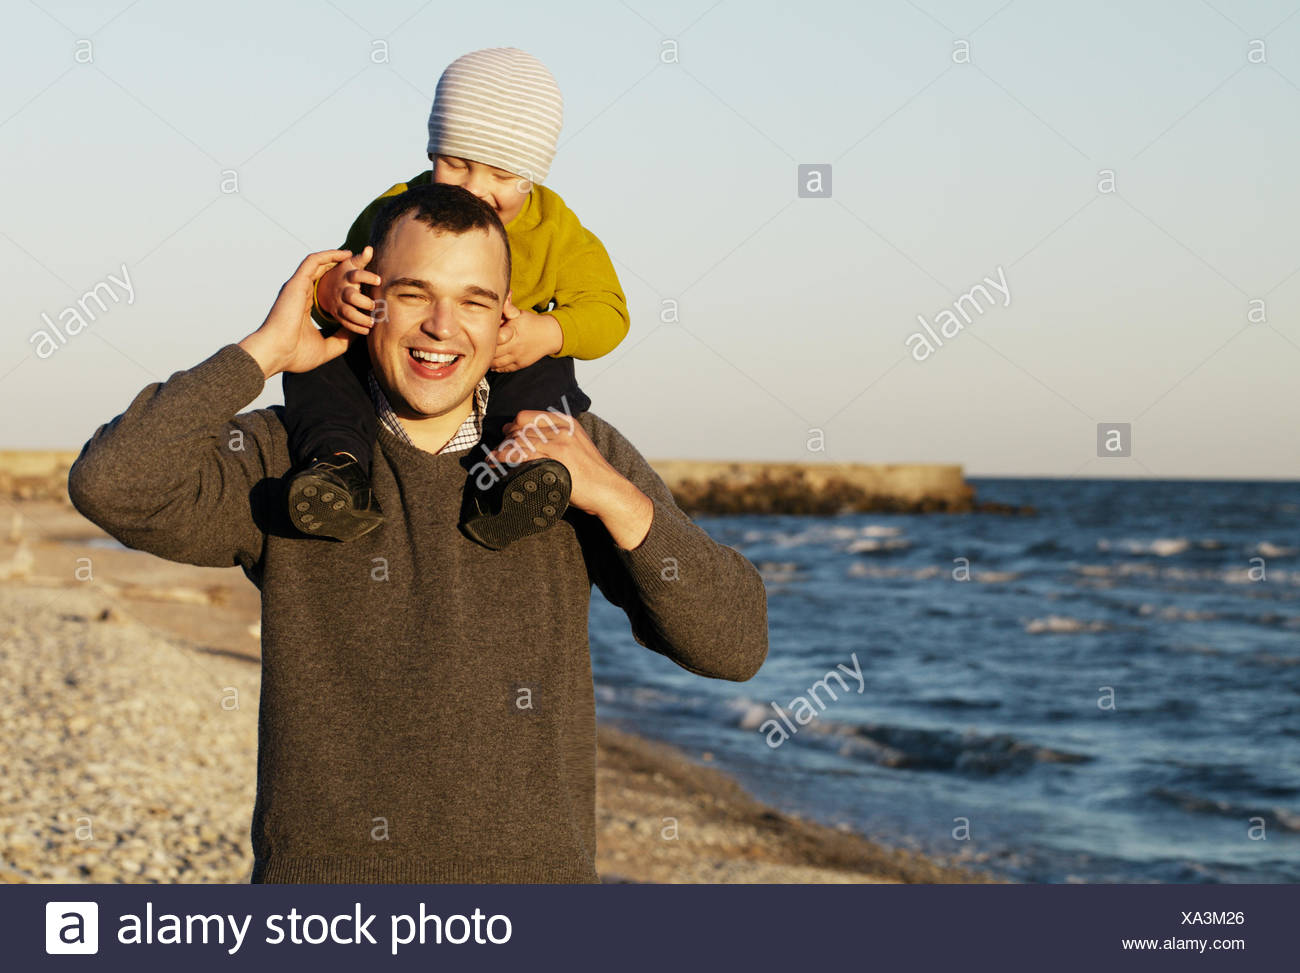 Laughing father giving his sonny a piggy back - Stock Image